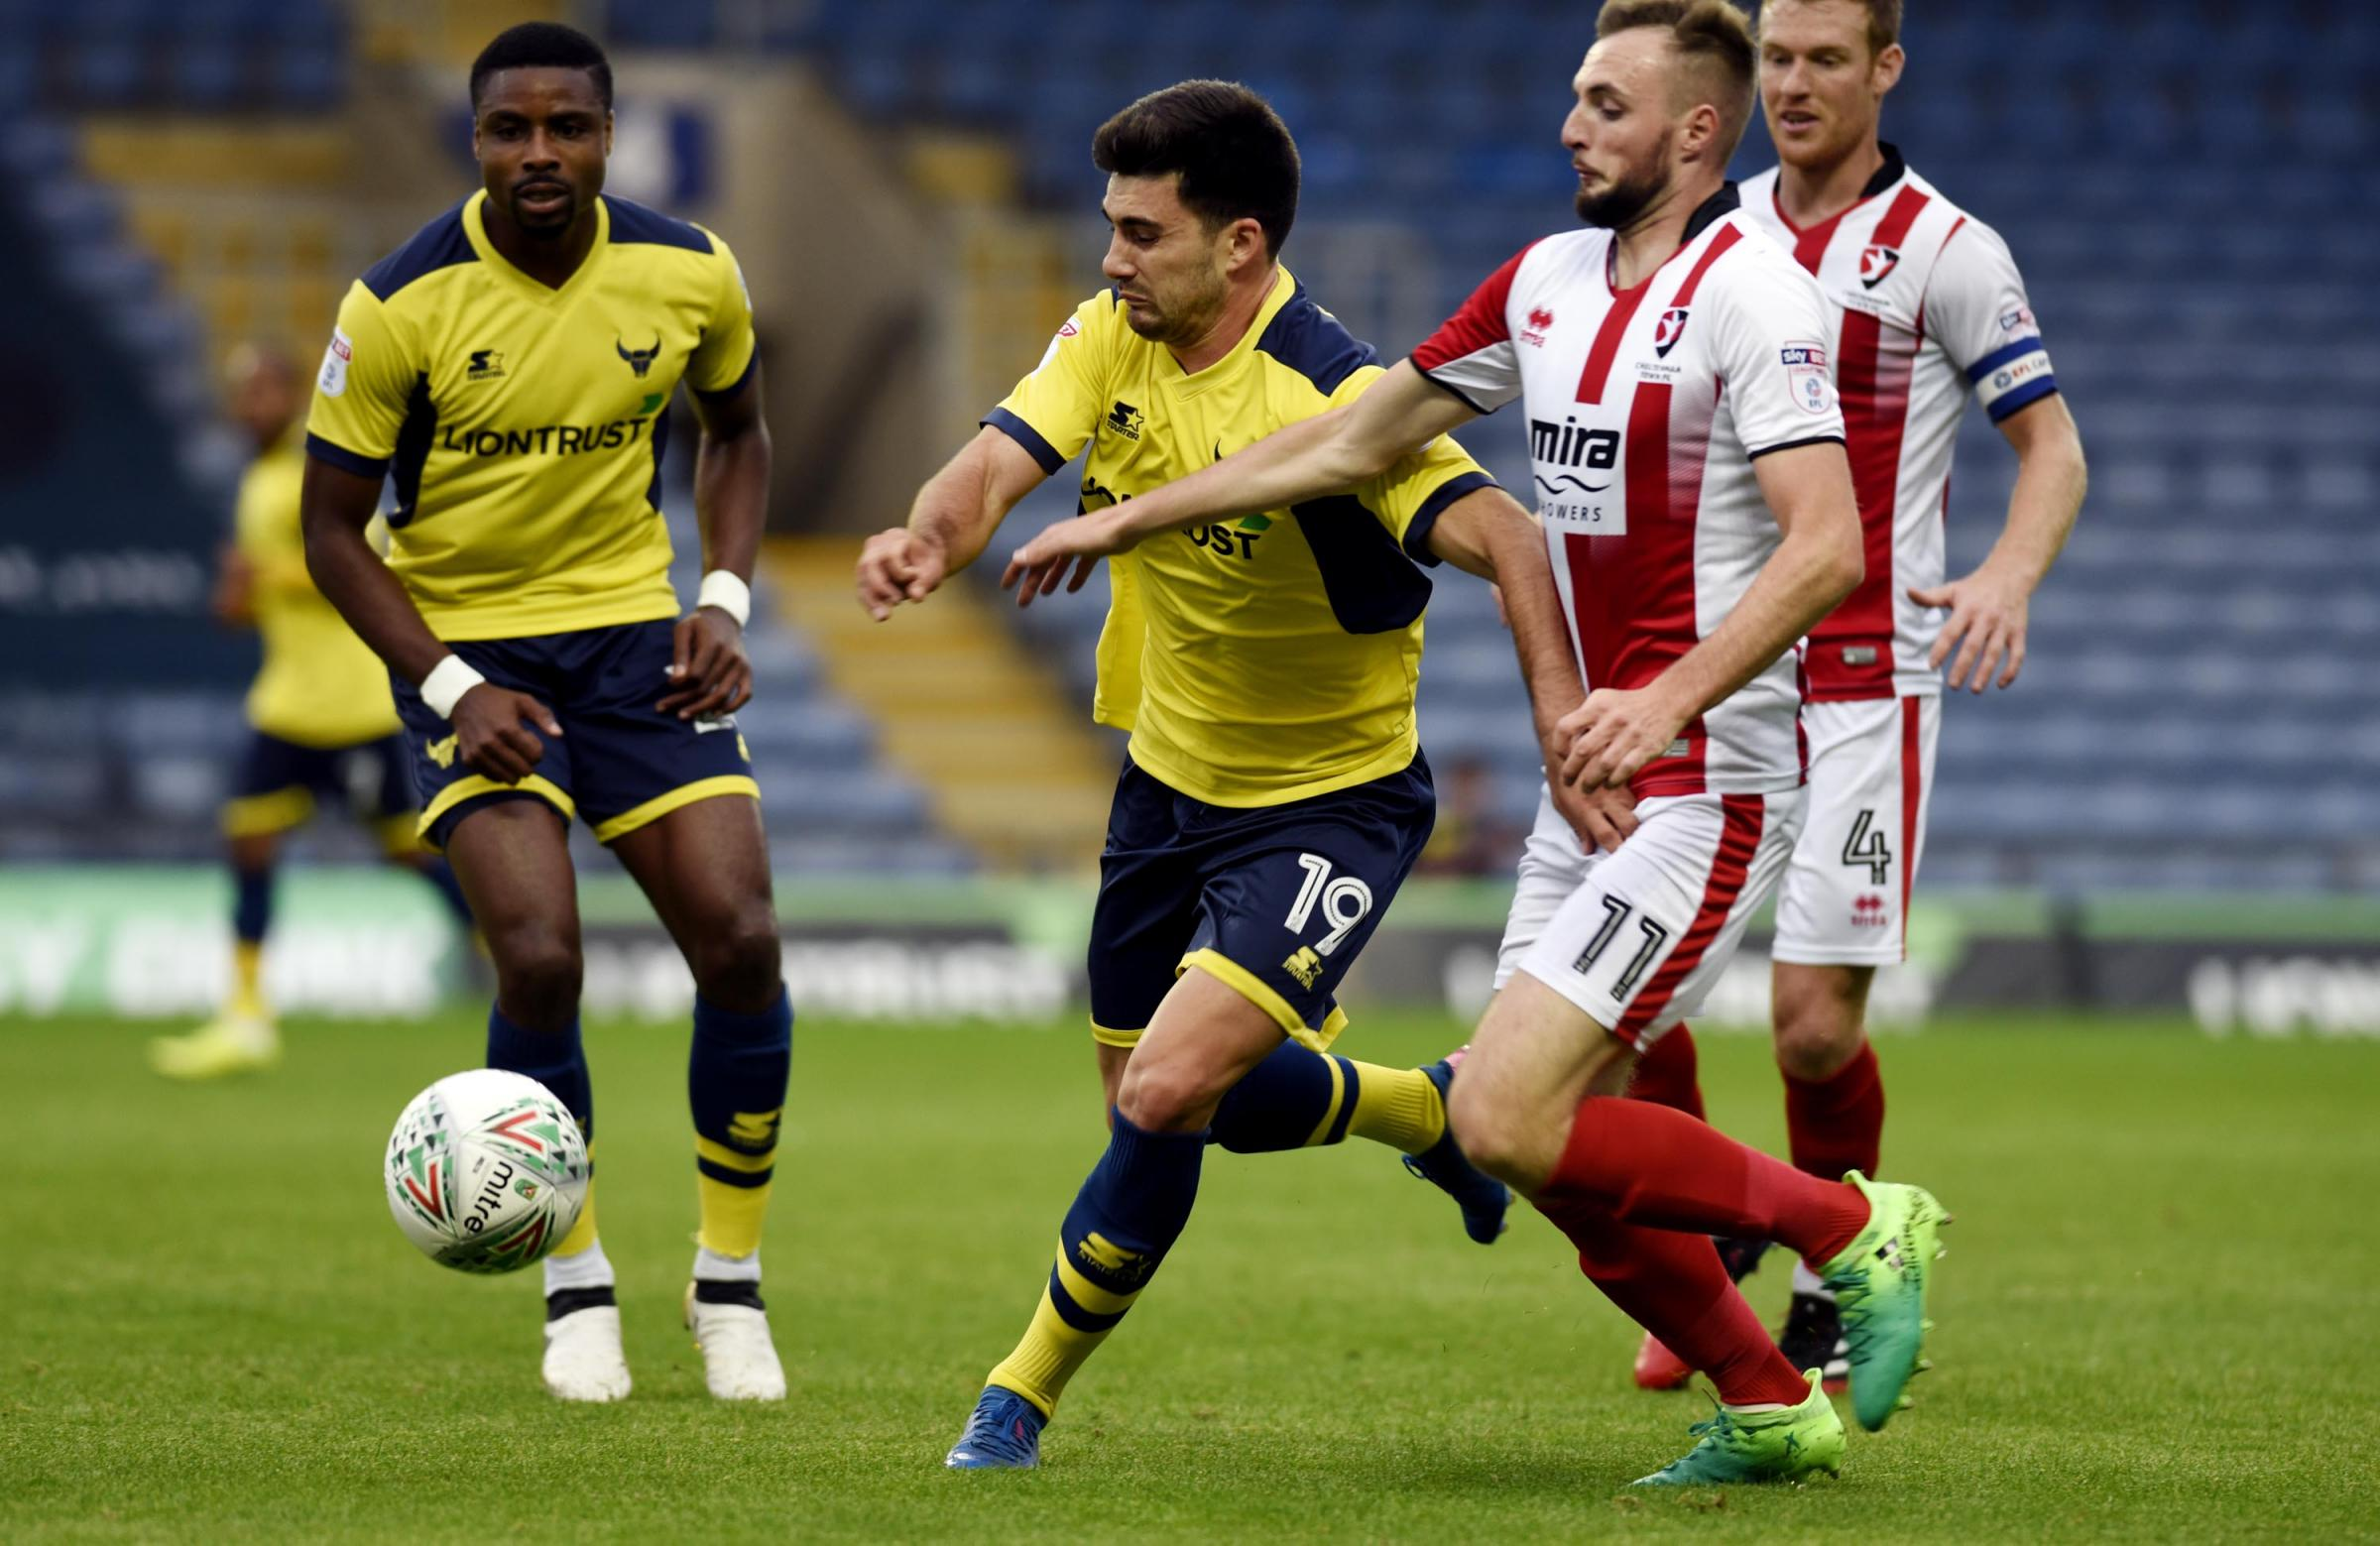 Oxford United lost to Cheltenham Town in last season's Carabao Cup first round